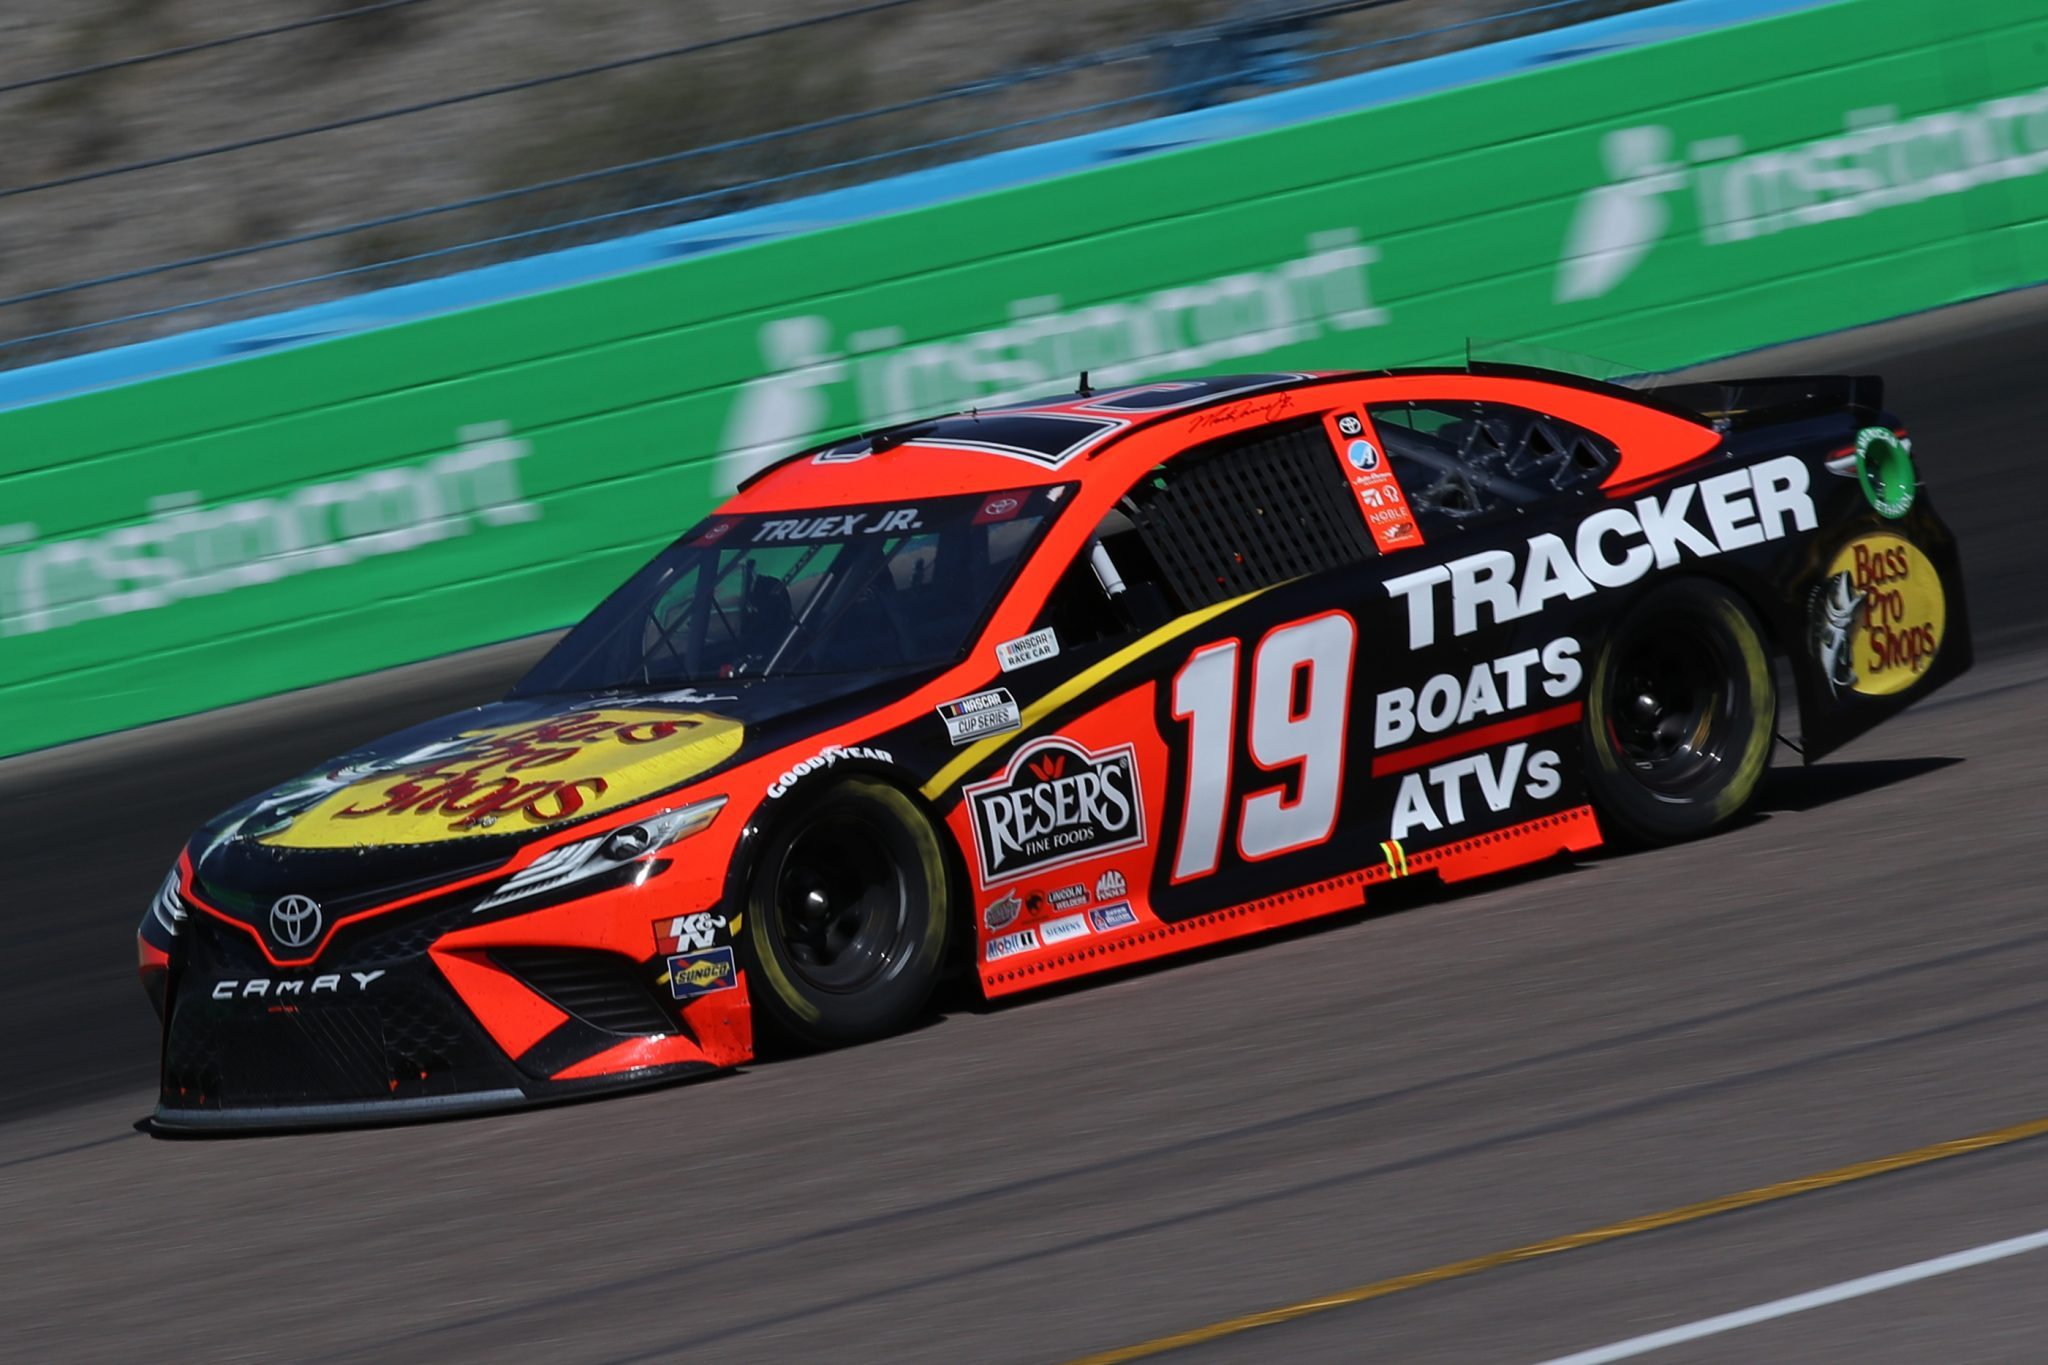 AVONDALE, ARIZONA - MARCH 14: Martin Truex Jr., driver of the #19 Bass Pro Toyota, drives during the NASCAR Cup Series Instacart 500 at Phoenix Raceway on March 14, 2021 in Avondale, Arizona. (Photo by Sean Gardner/Getty Images) | Getty Images